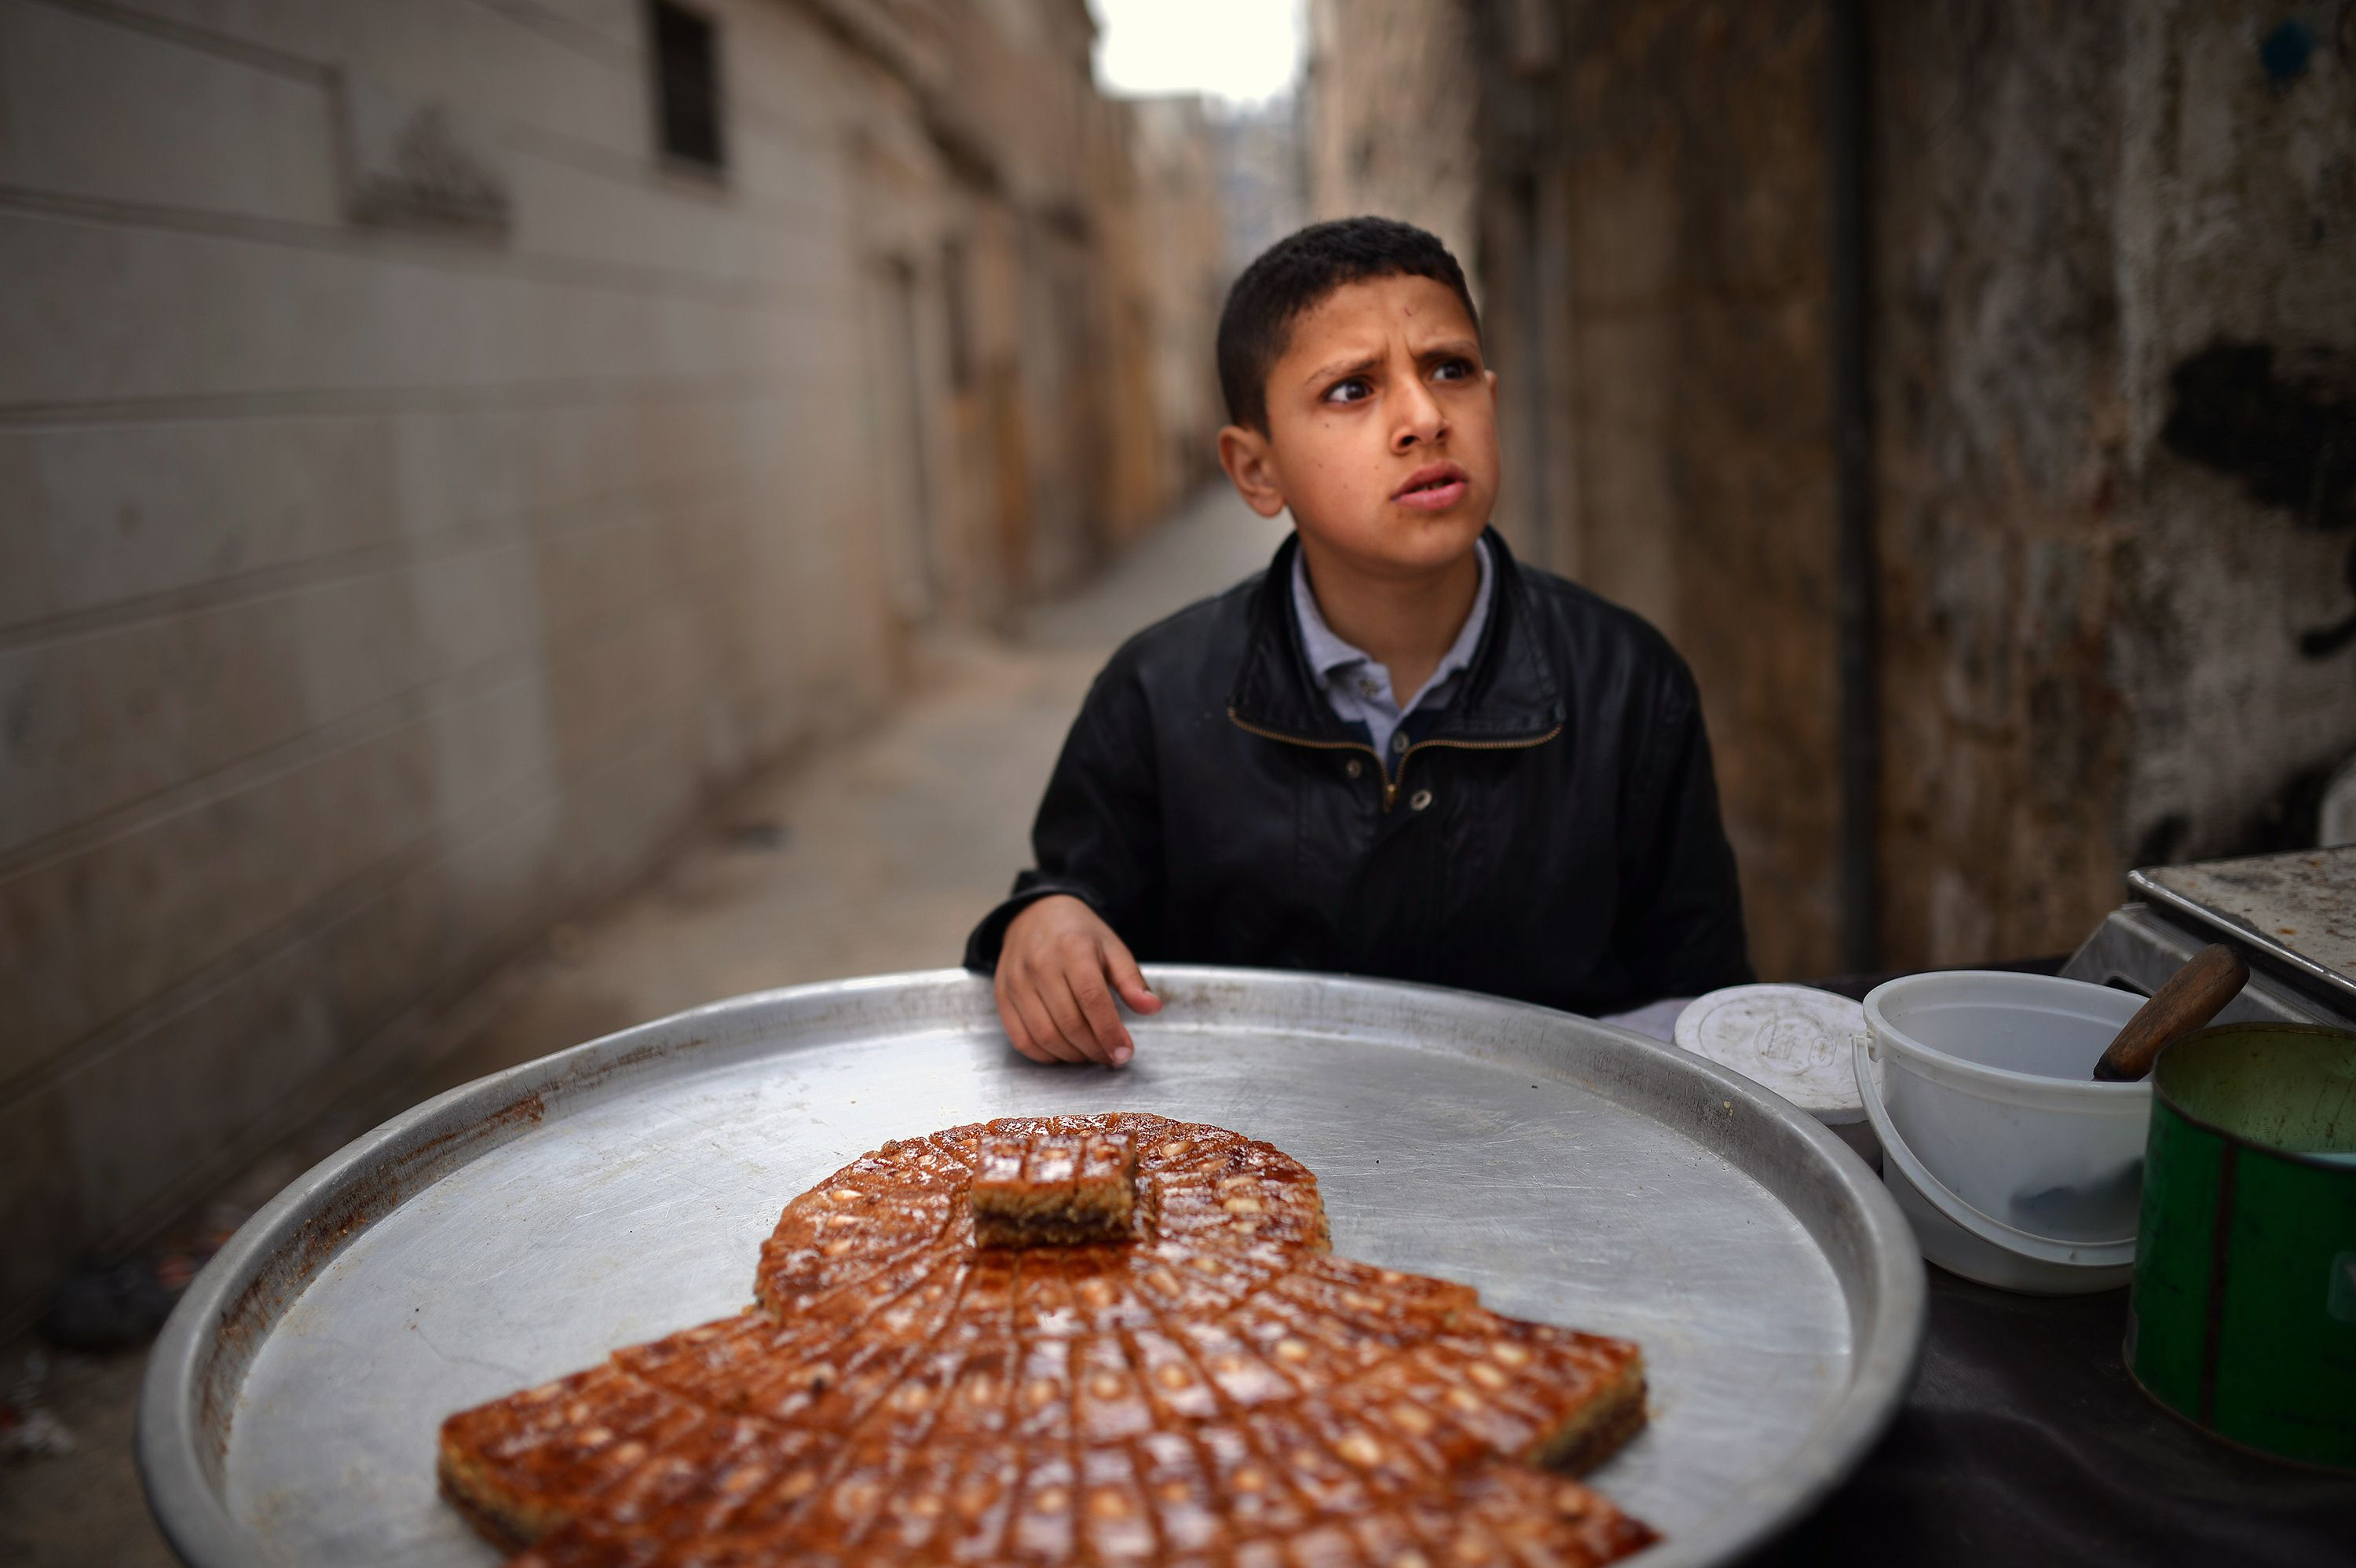 A Syrian boy sells sweets in the northern Syrian city of Aleppo on April 6, 2013. Conflict in neighbourhoods of Aleppo, which has been shaken by war for nine months, has put an end to childhood for most youths and it is not uncommon to see young boys working in the streets.